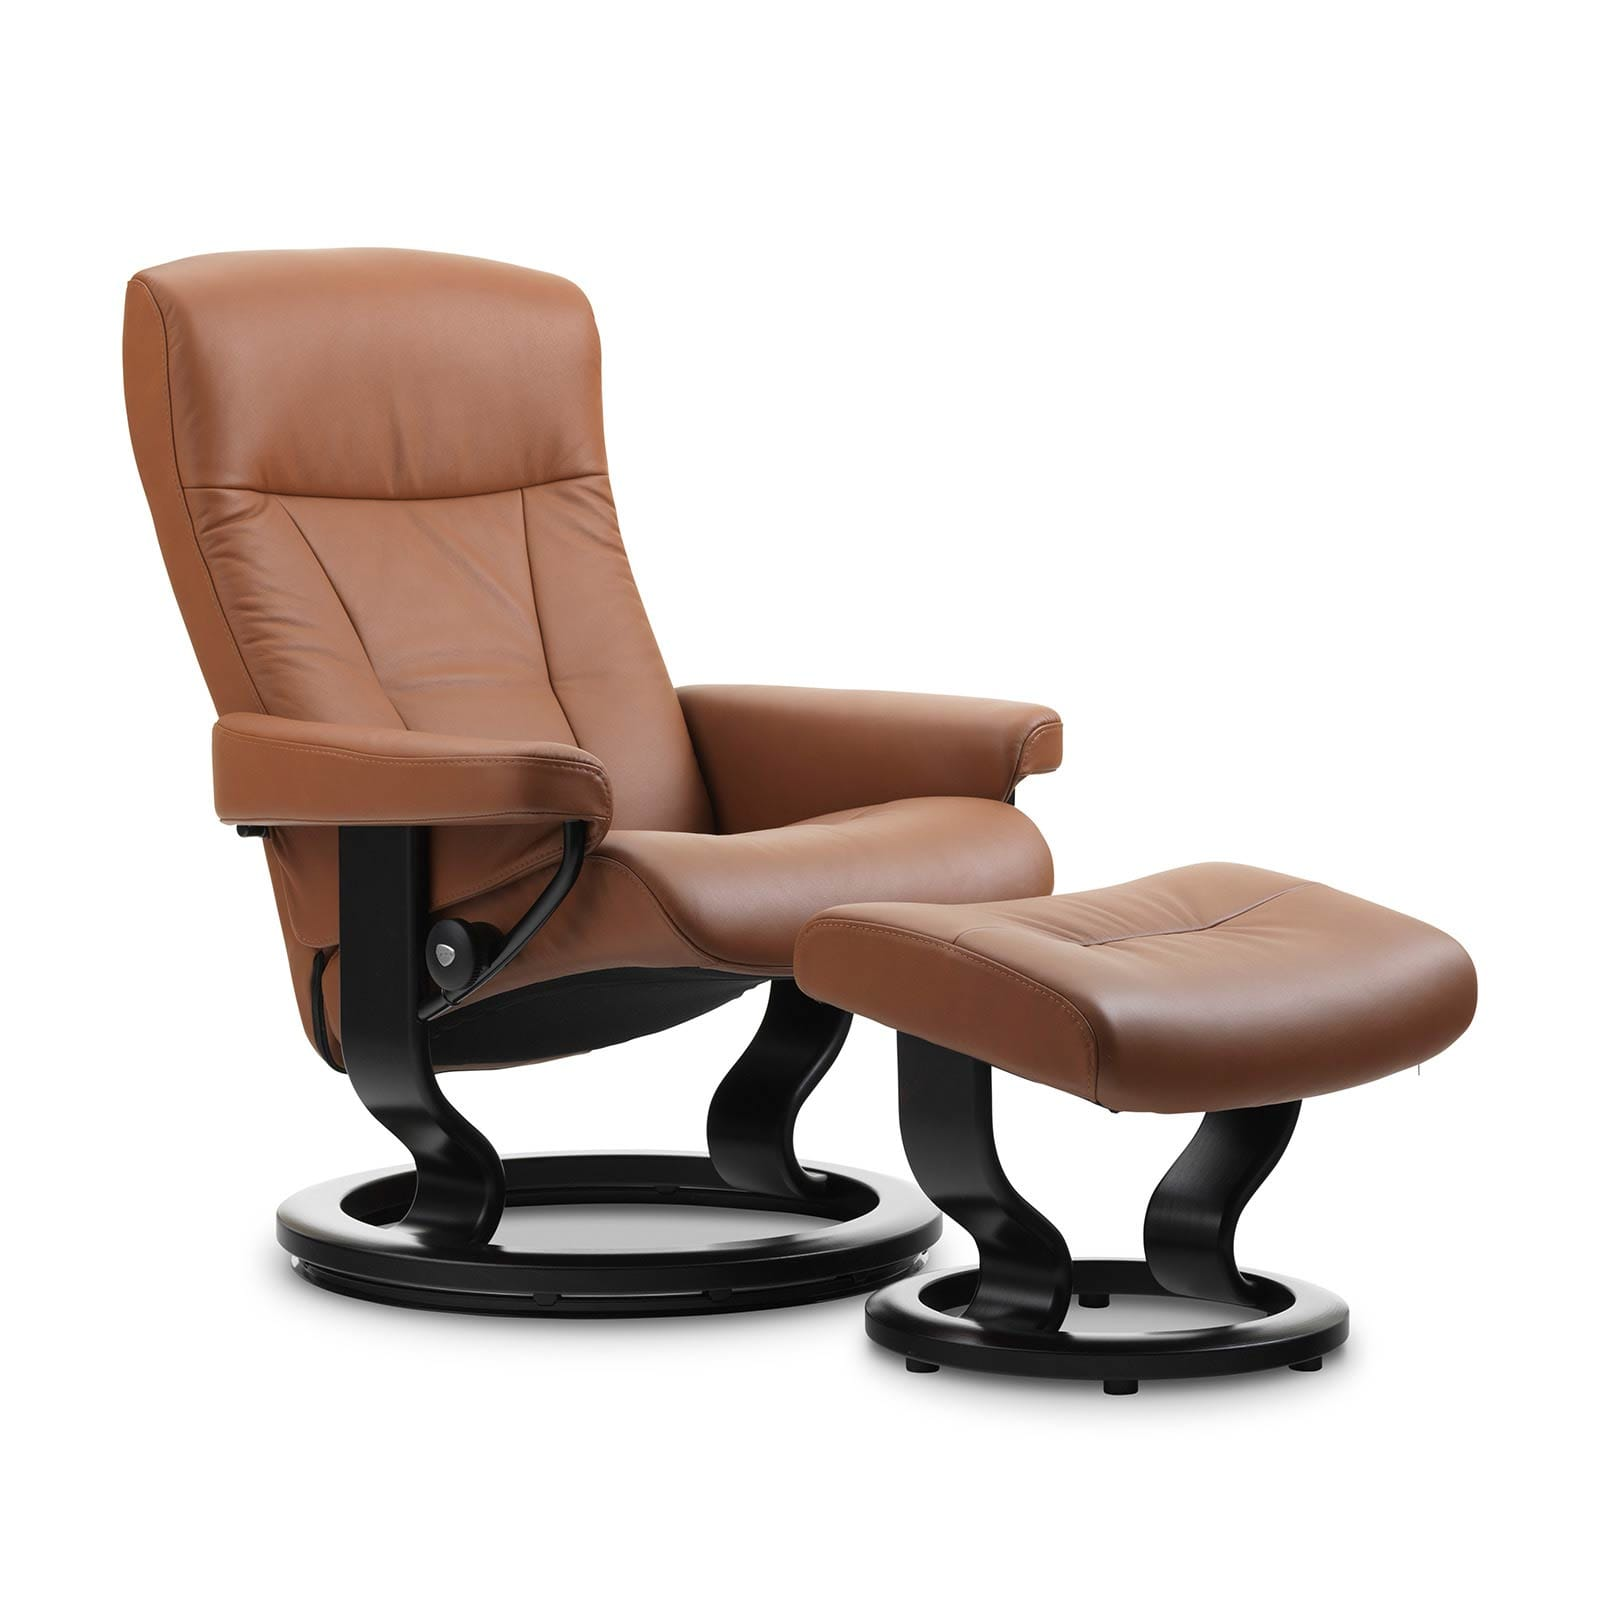 Summer Casual Geflecht Relax-sessel Sessel Mit Hocker Leder Interesting Stressless City High